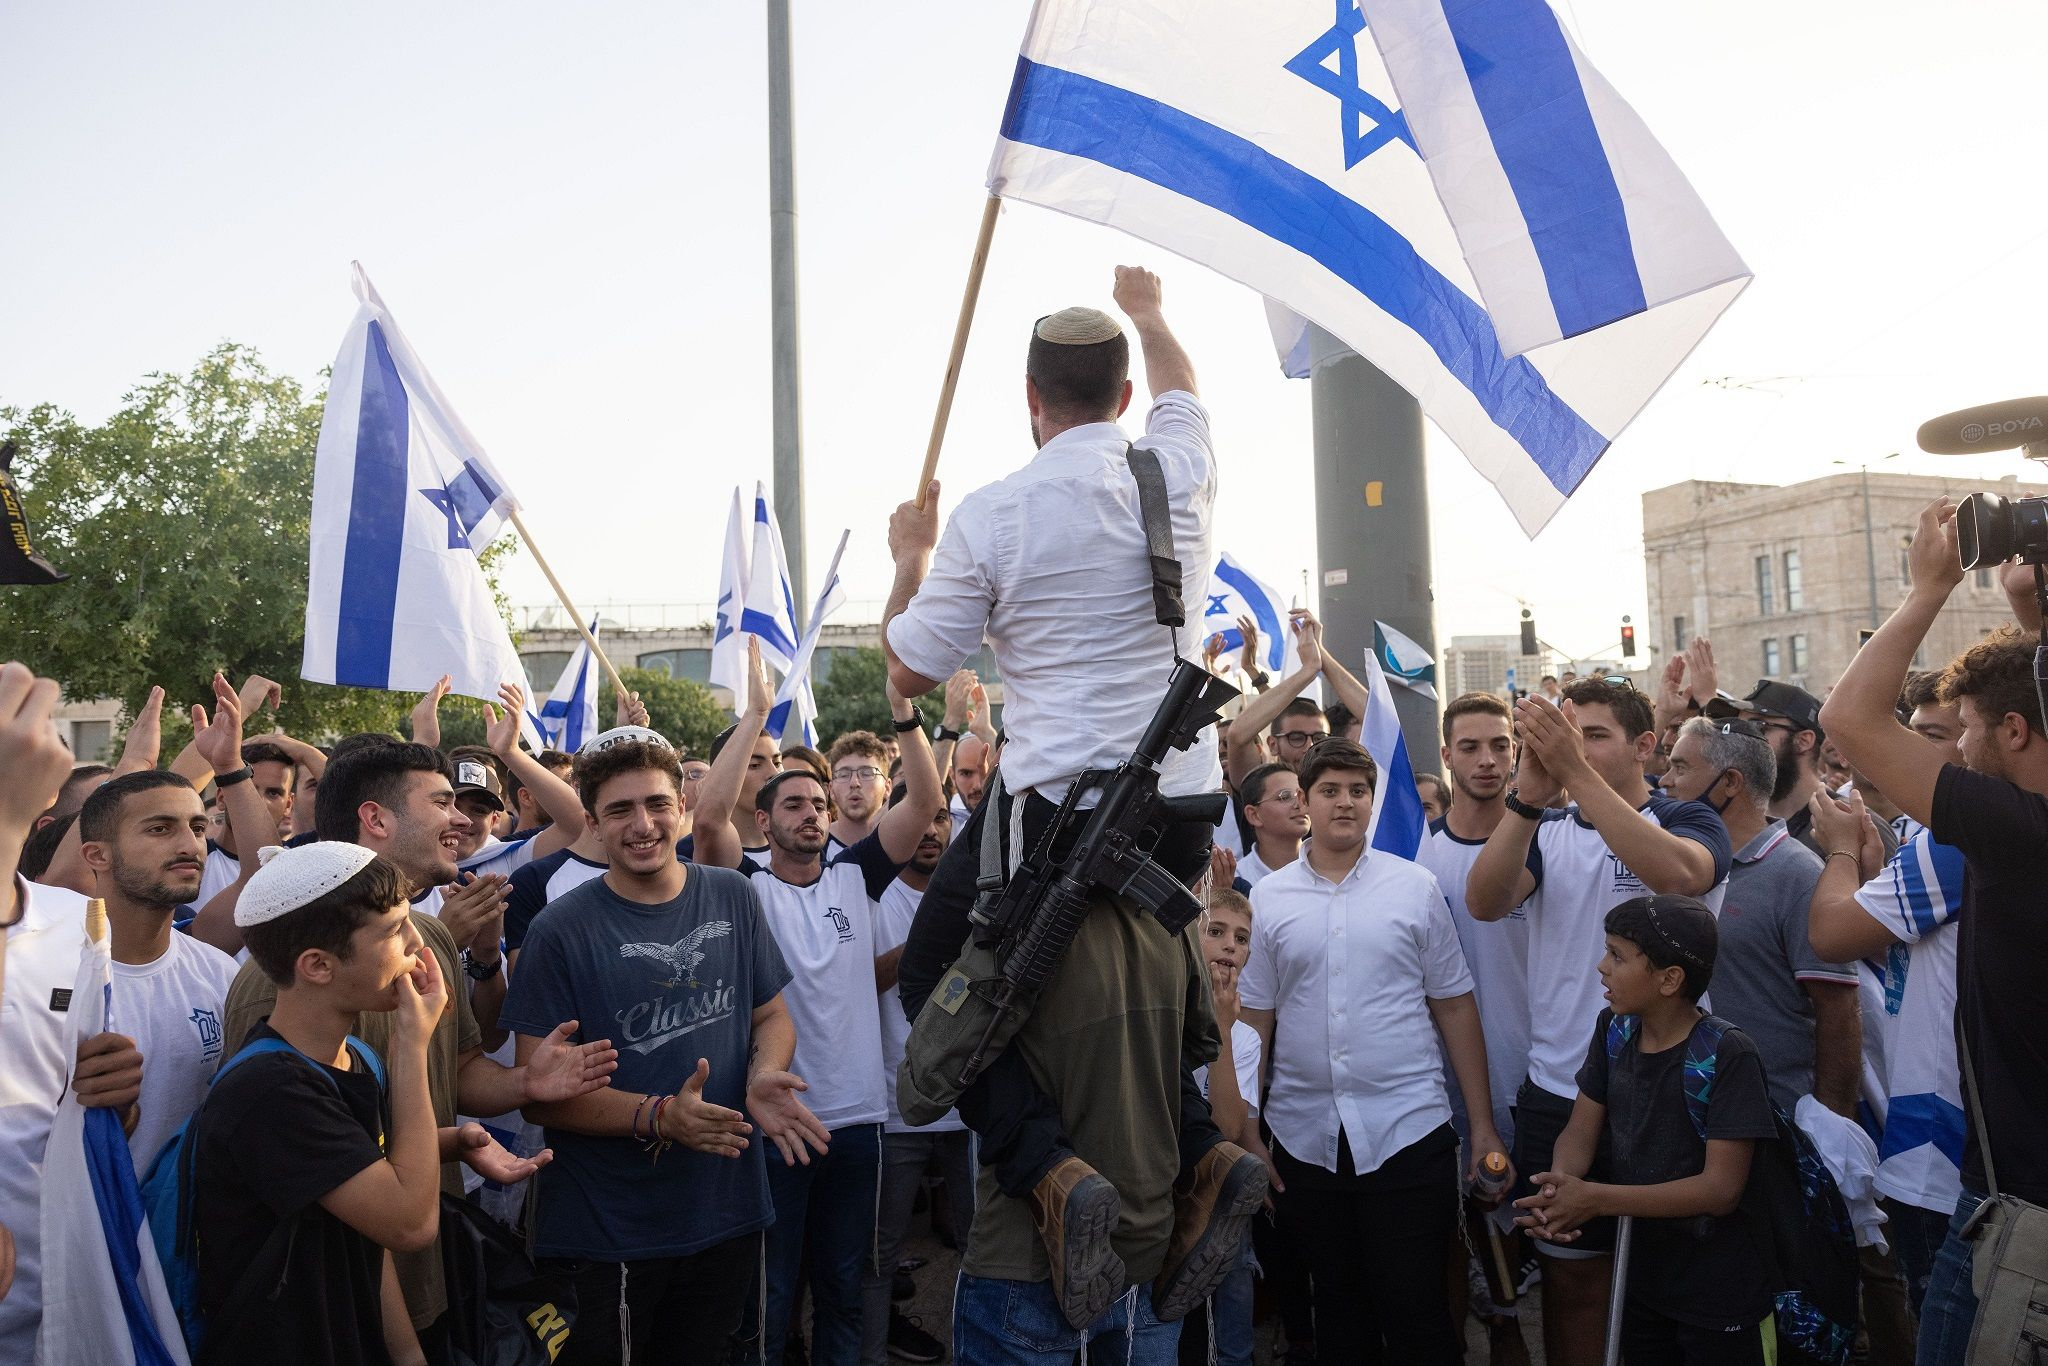 'March Of The Flags' In Jerusalem: 17 Palestinians Arrested – i24NEWS